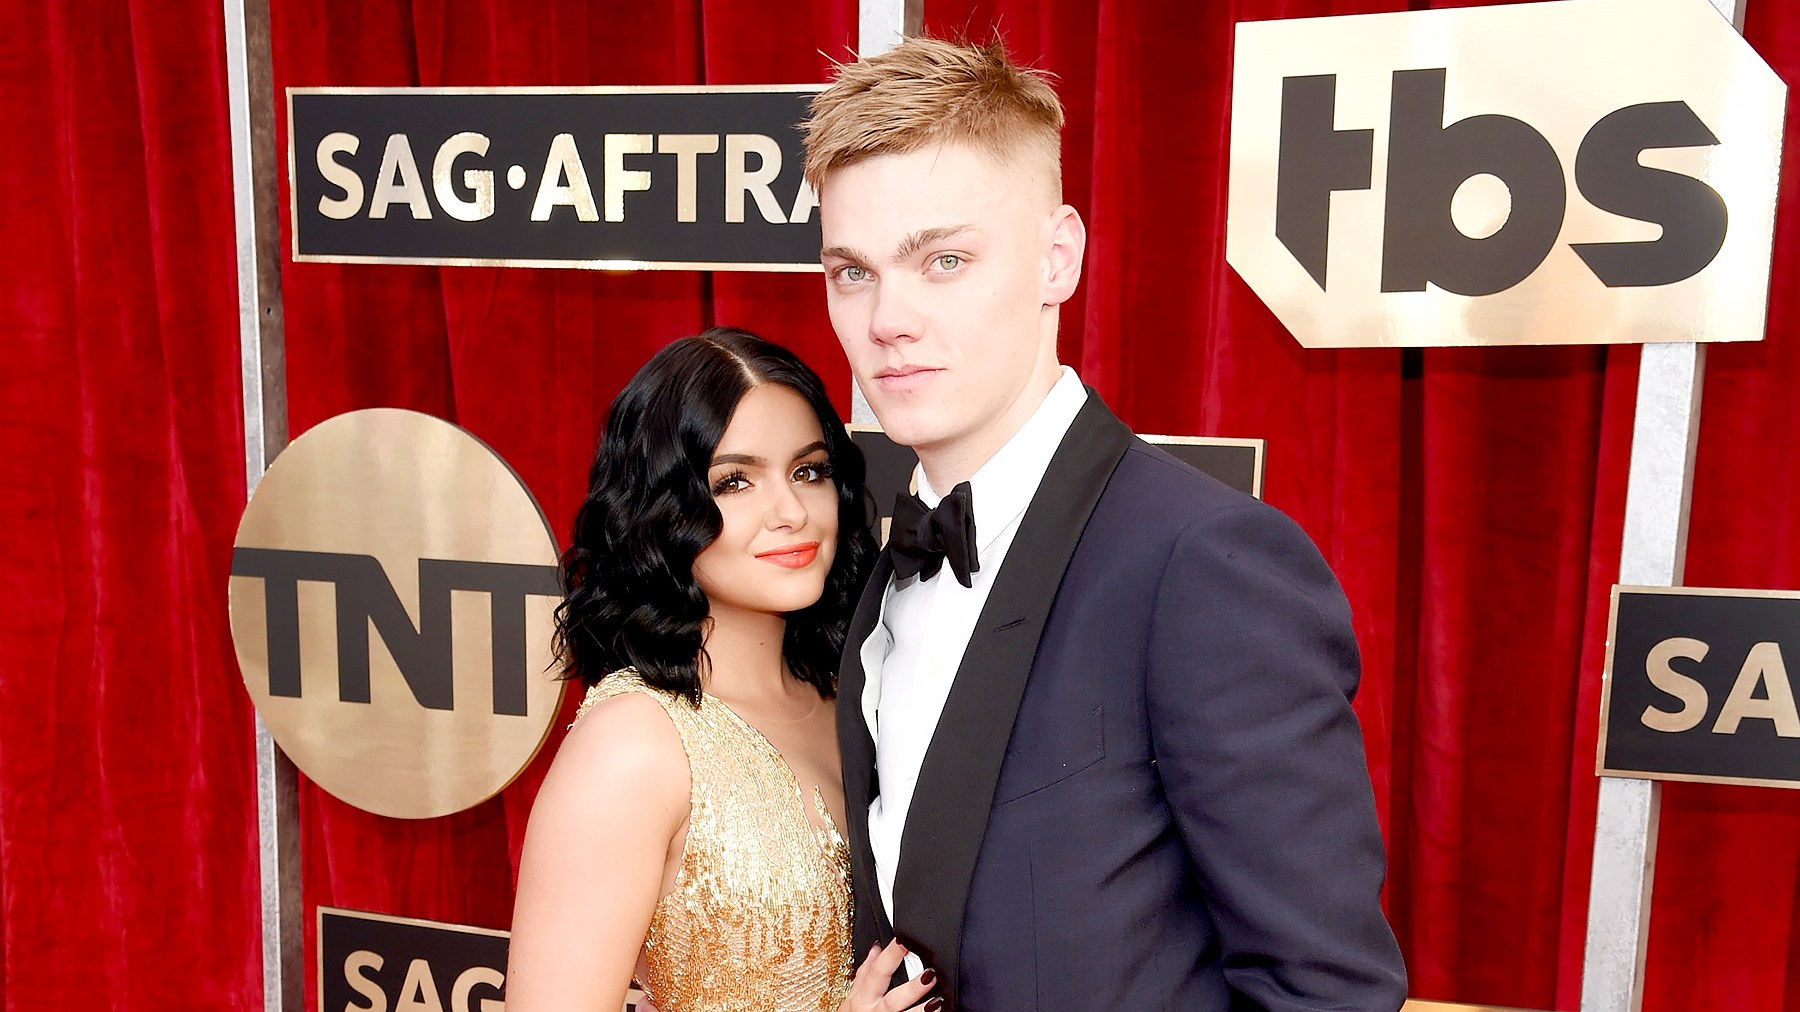 Ariel Winter and Levi Meaden attend The 23rd Annual Screen Actors Guild Awards at The Shrine Auditorium on January 29, 2017 in Los Angeles, California.